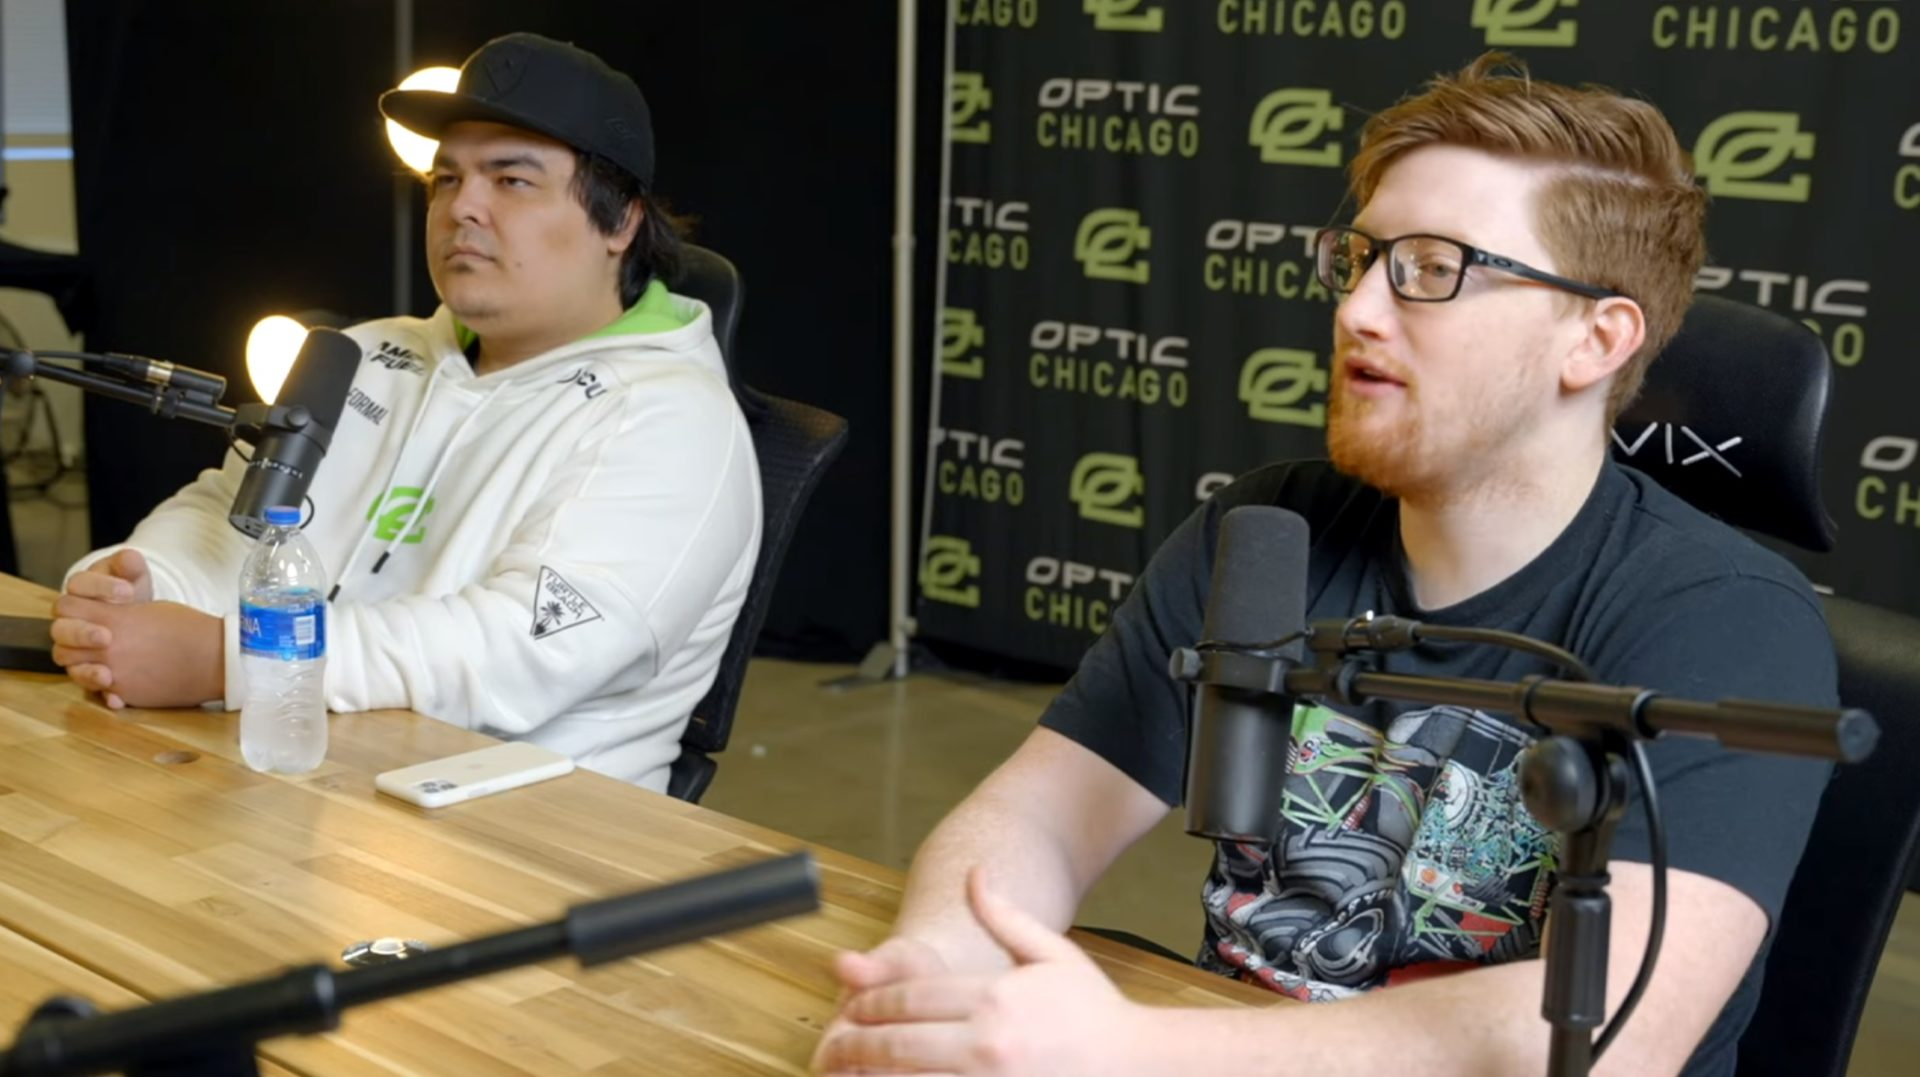 Scump & FormaL on OpTic's preshow